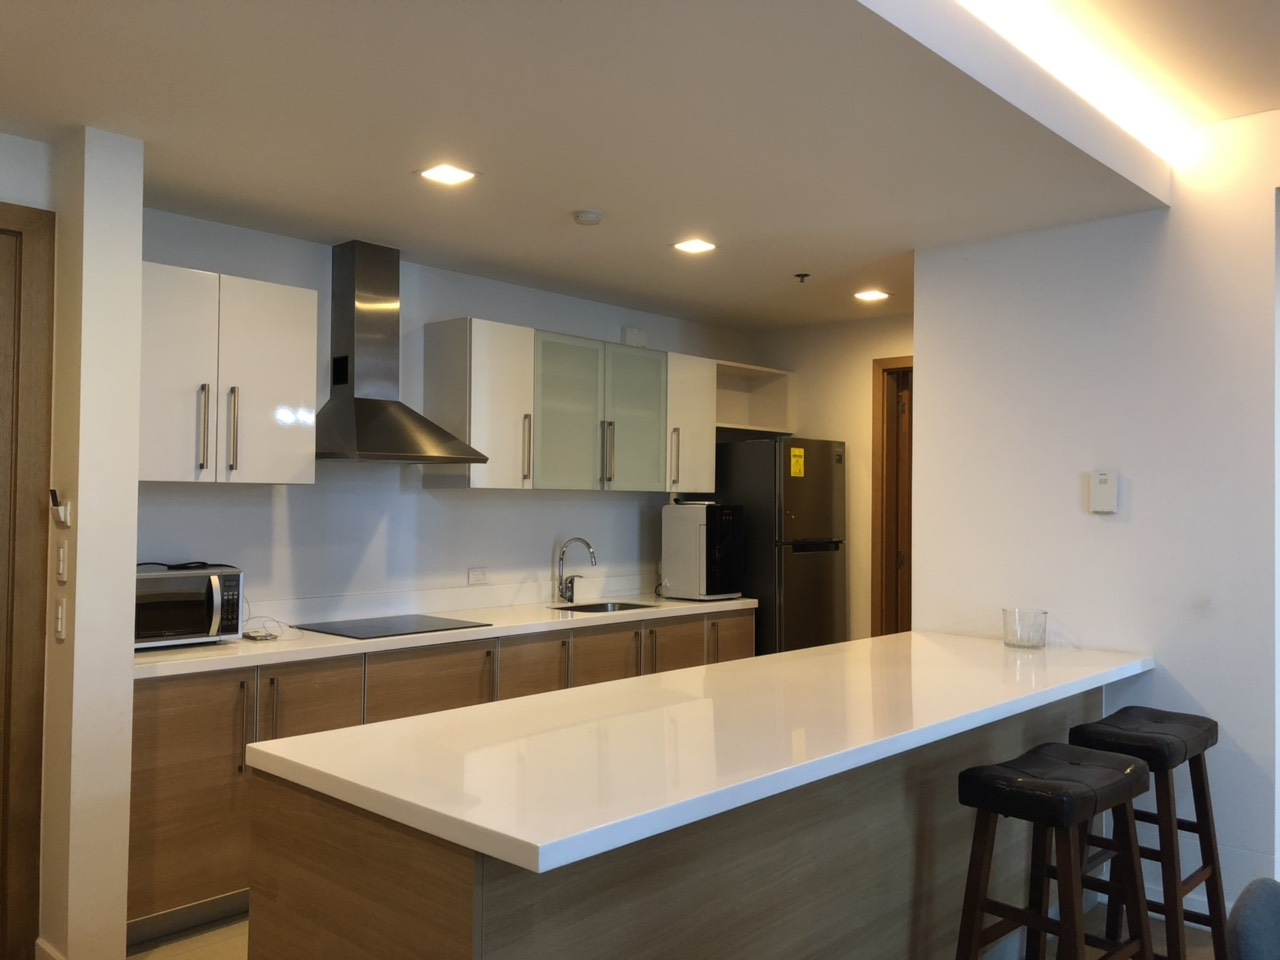 1BR Condo For Rent, Park Terraces Kitchen 1